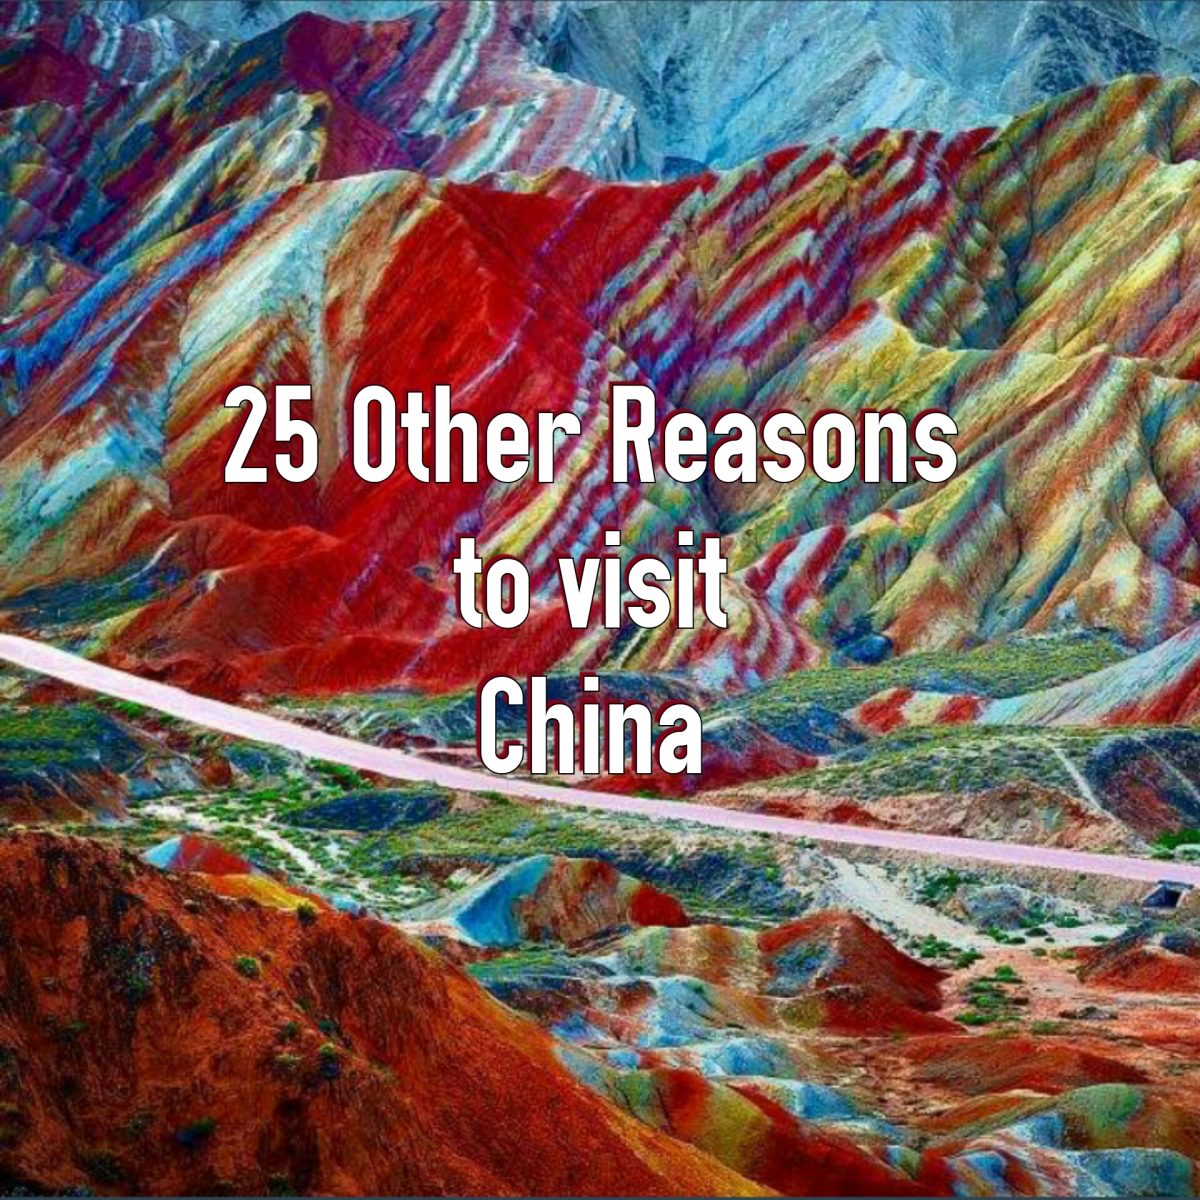 25 Other Reasons to Visit China